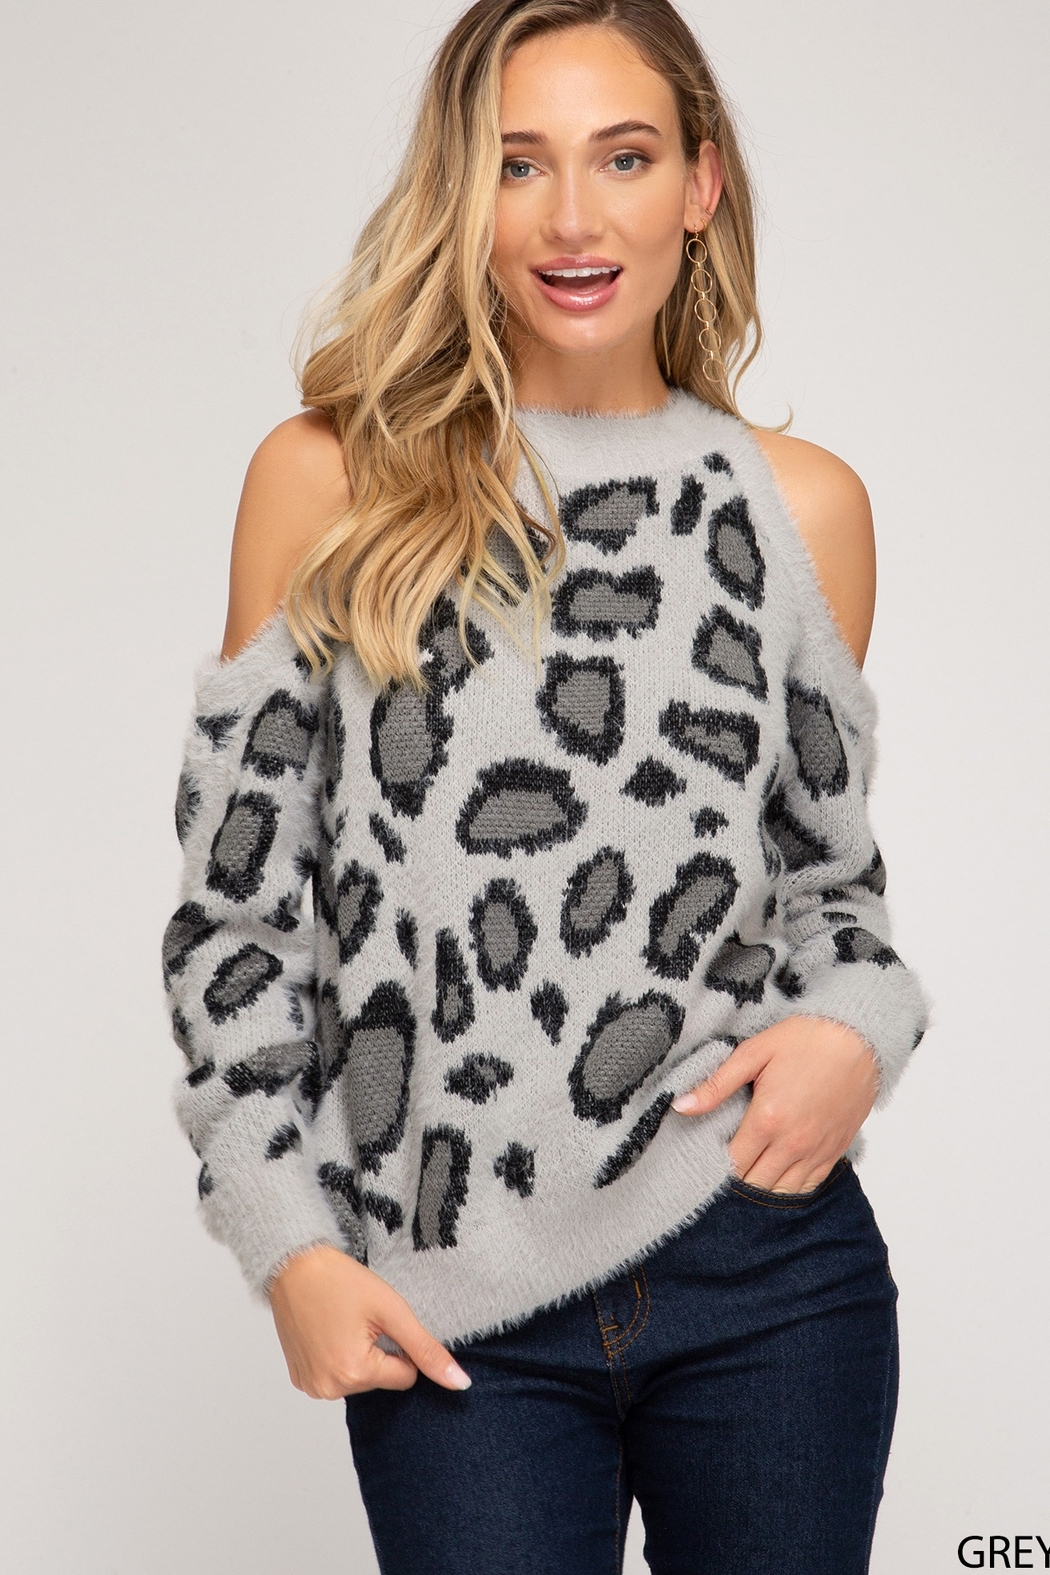 She & Sky  LONG SLEEVE COLD SHOULDER LEOPARD PRINT FUZZY KNIT SWEATER TOP - Main Image